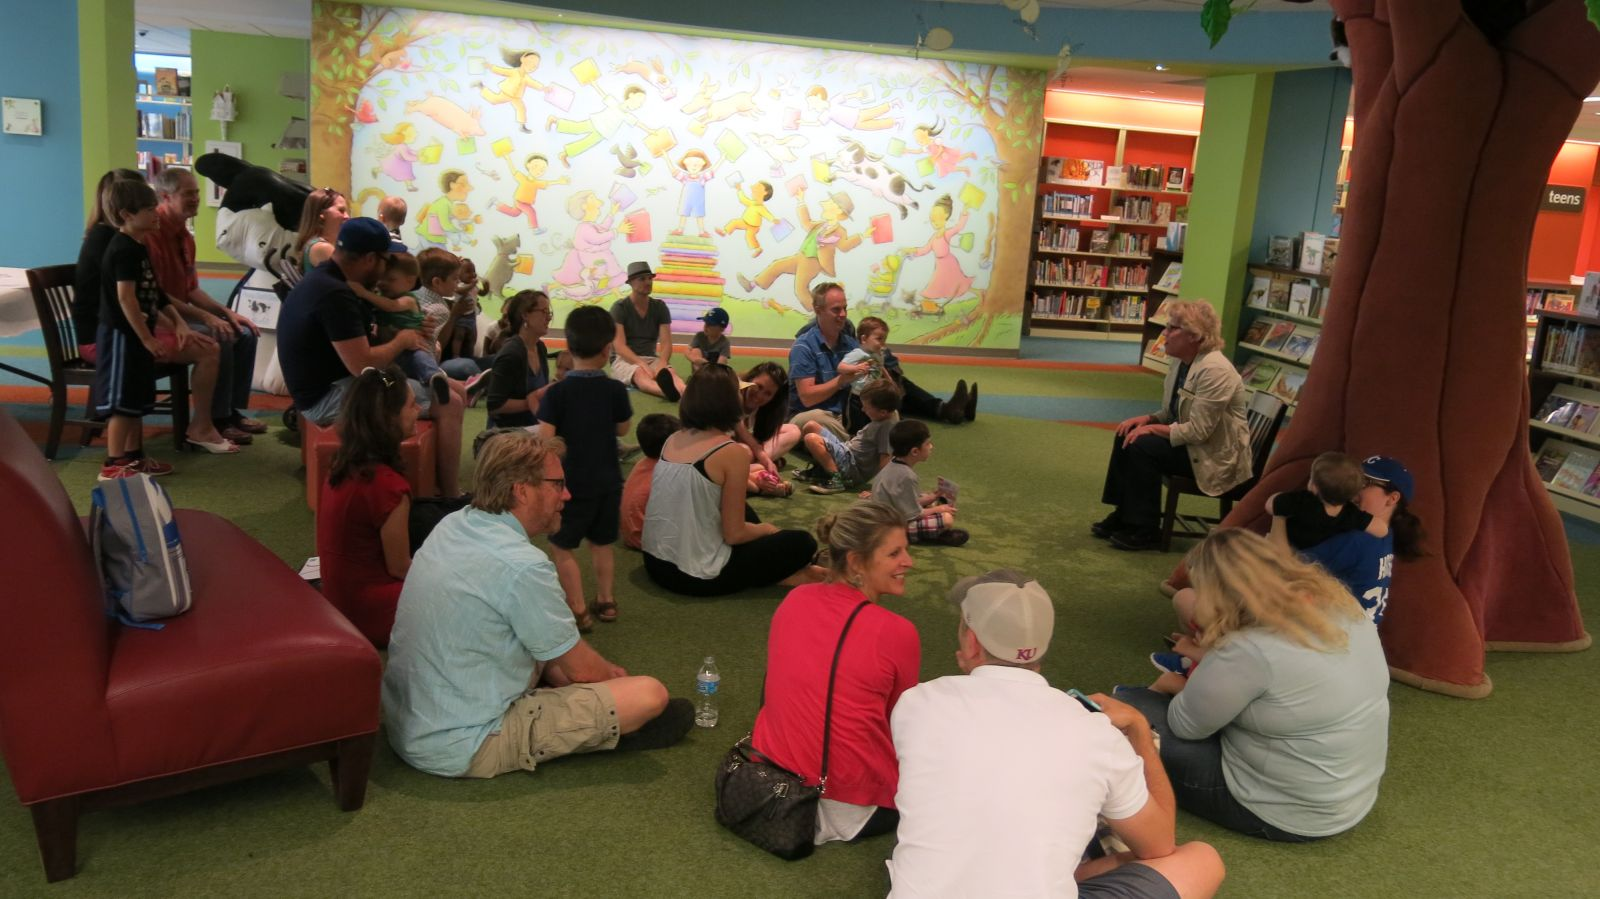 Image of the children's area at the Central Library with people sitting together for storytime.